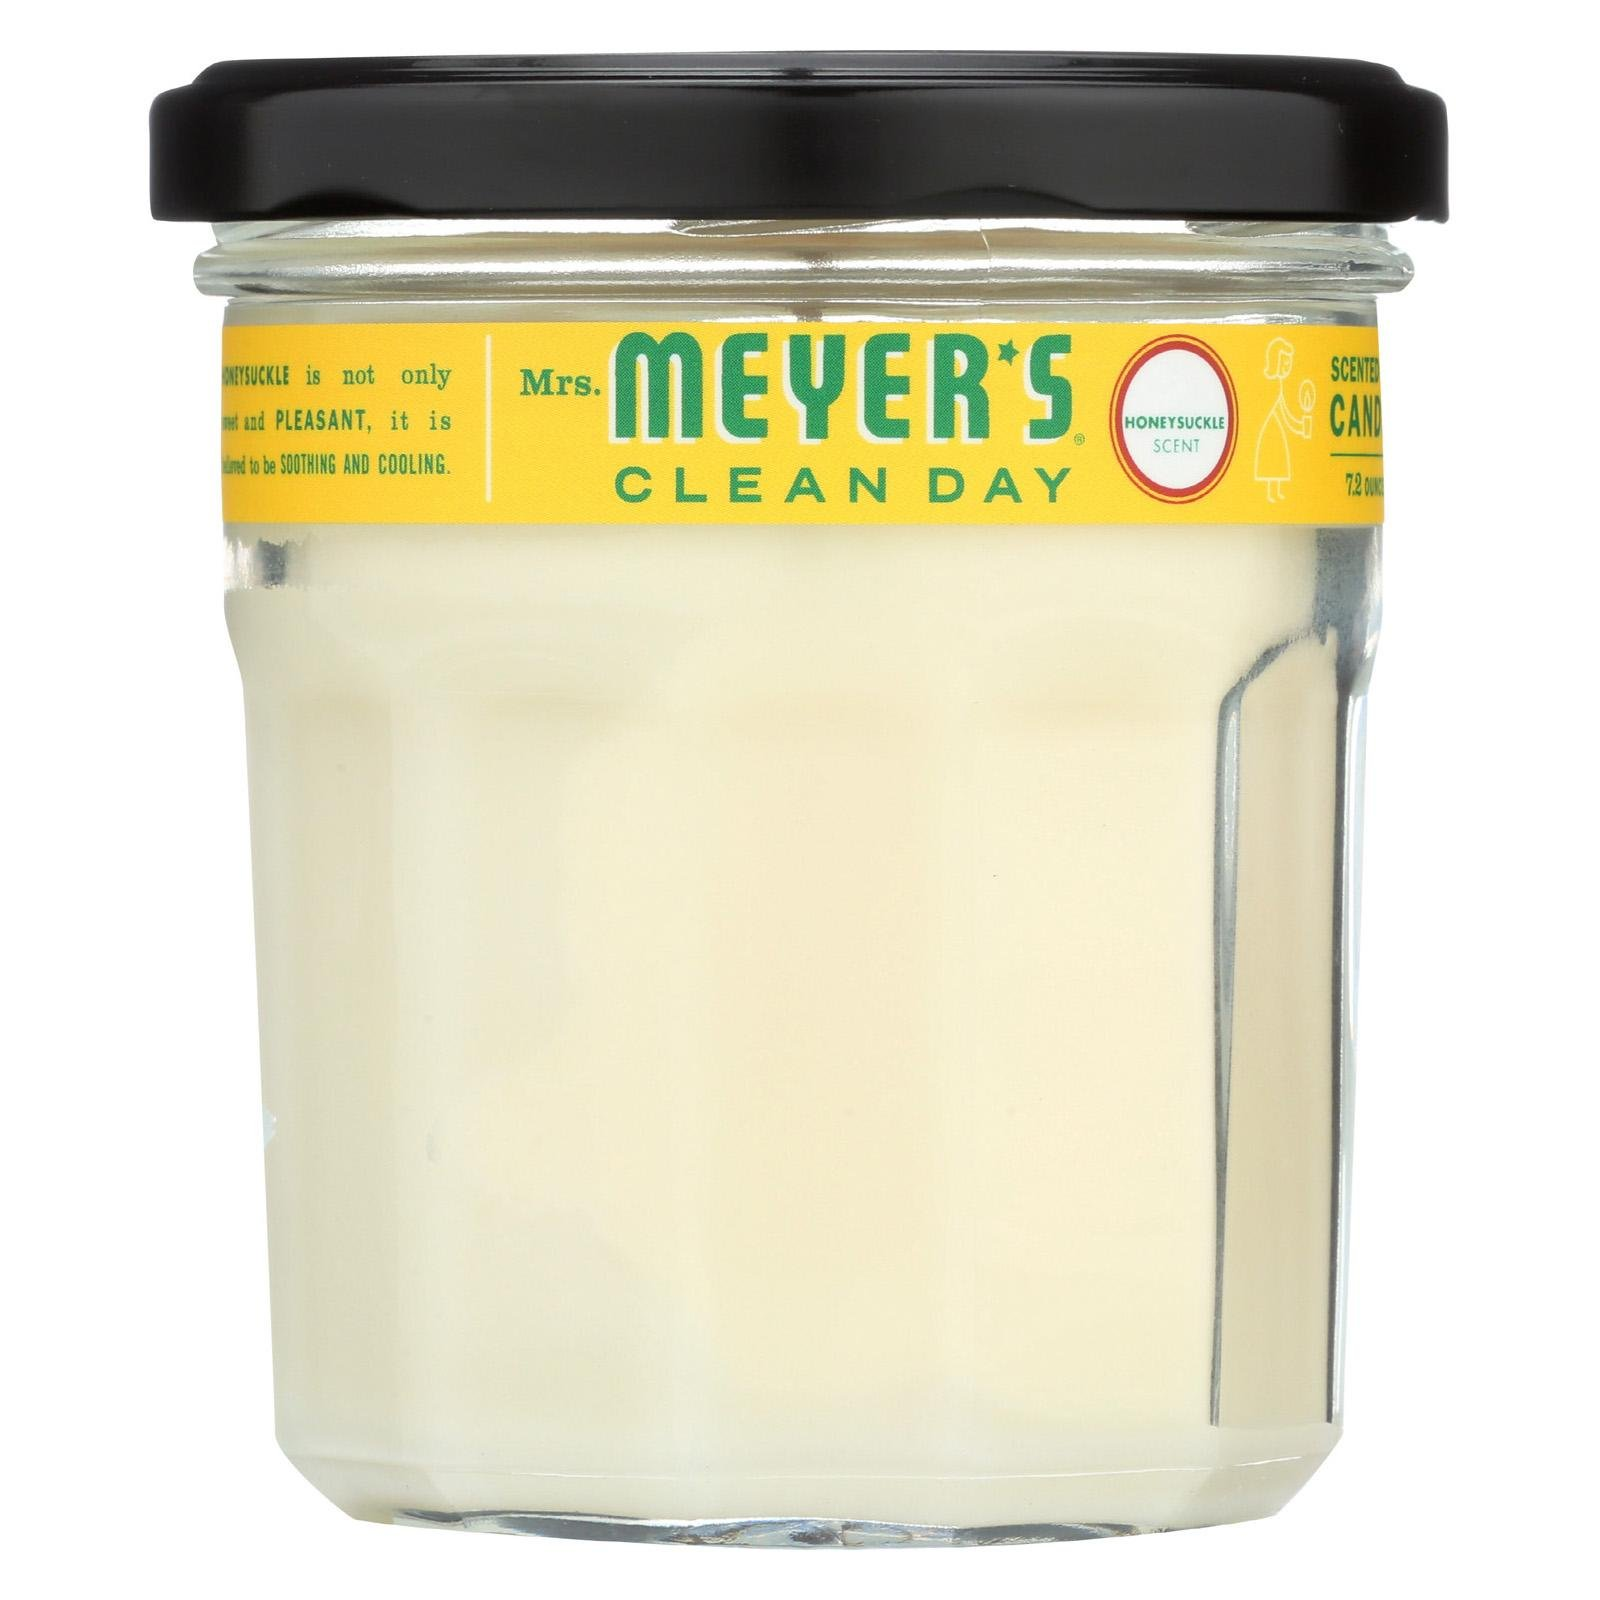 MRS.MEYERS CLEAN DAY, Soy Candle, Honeysuckle, Pack of 6, Size 7.2 OZ